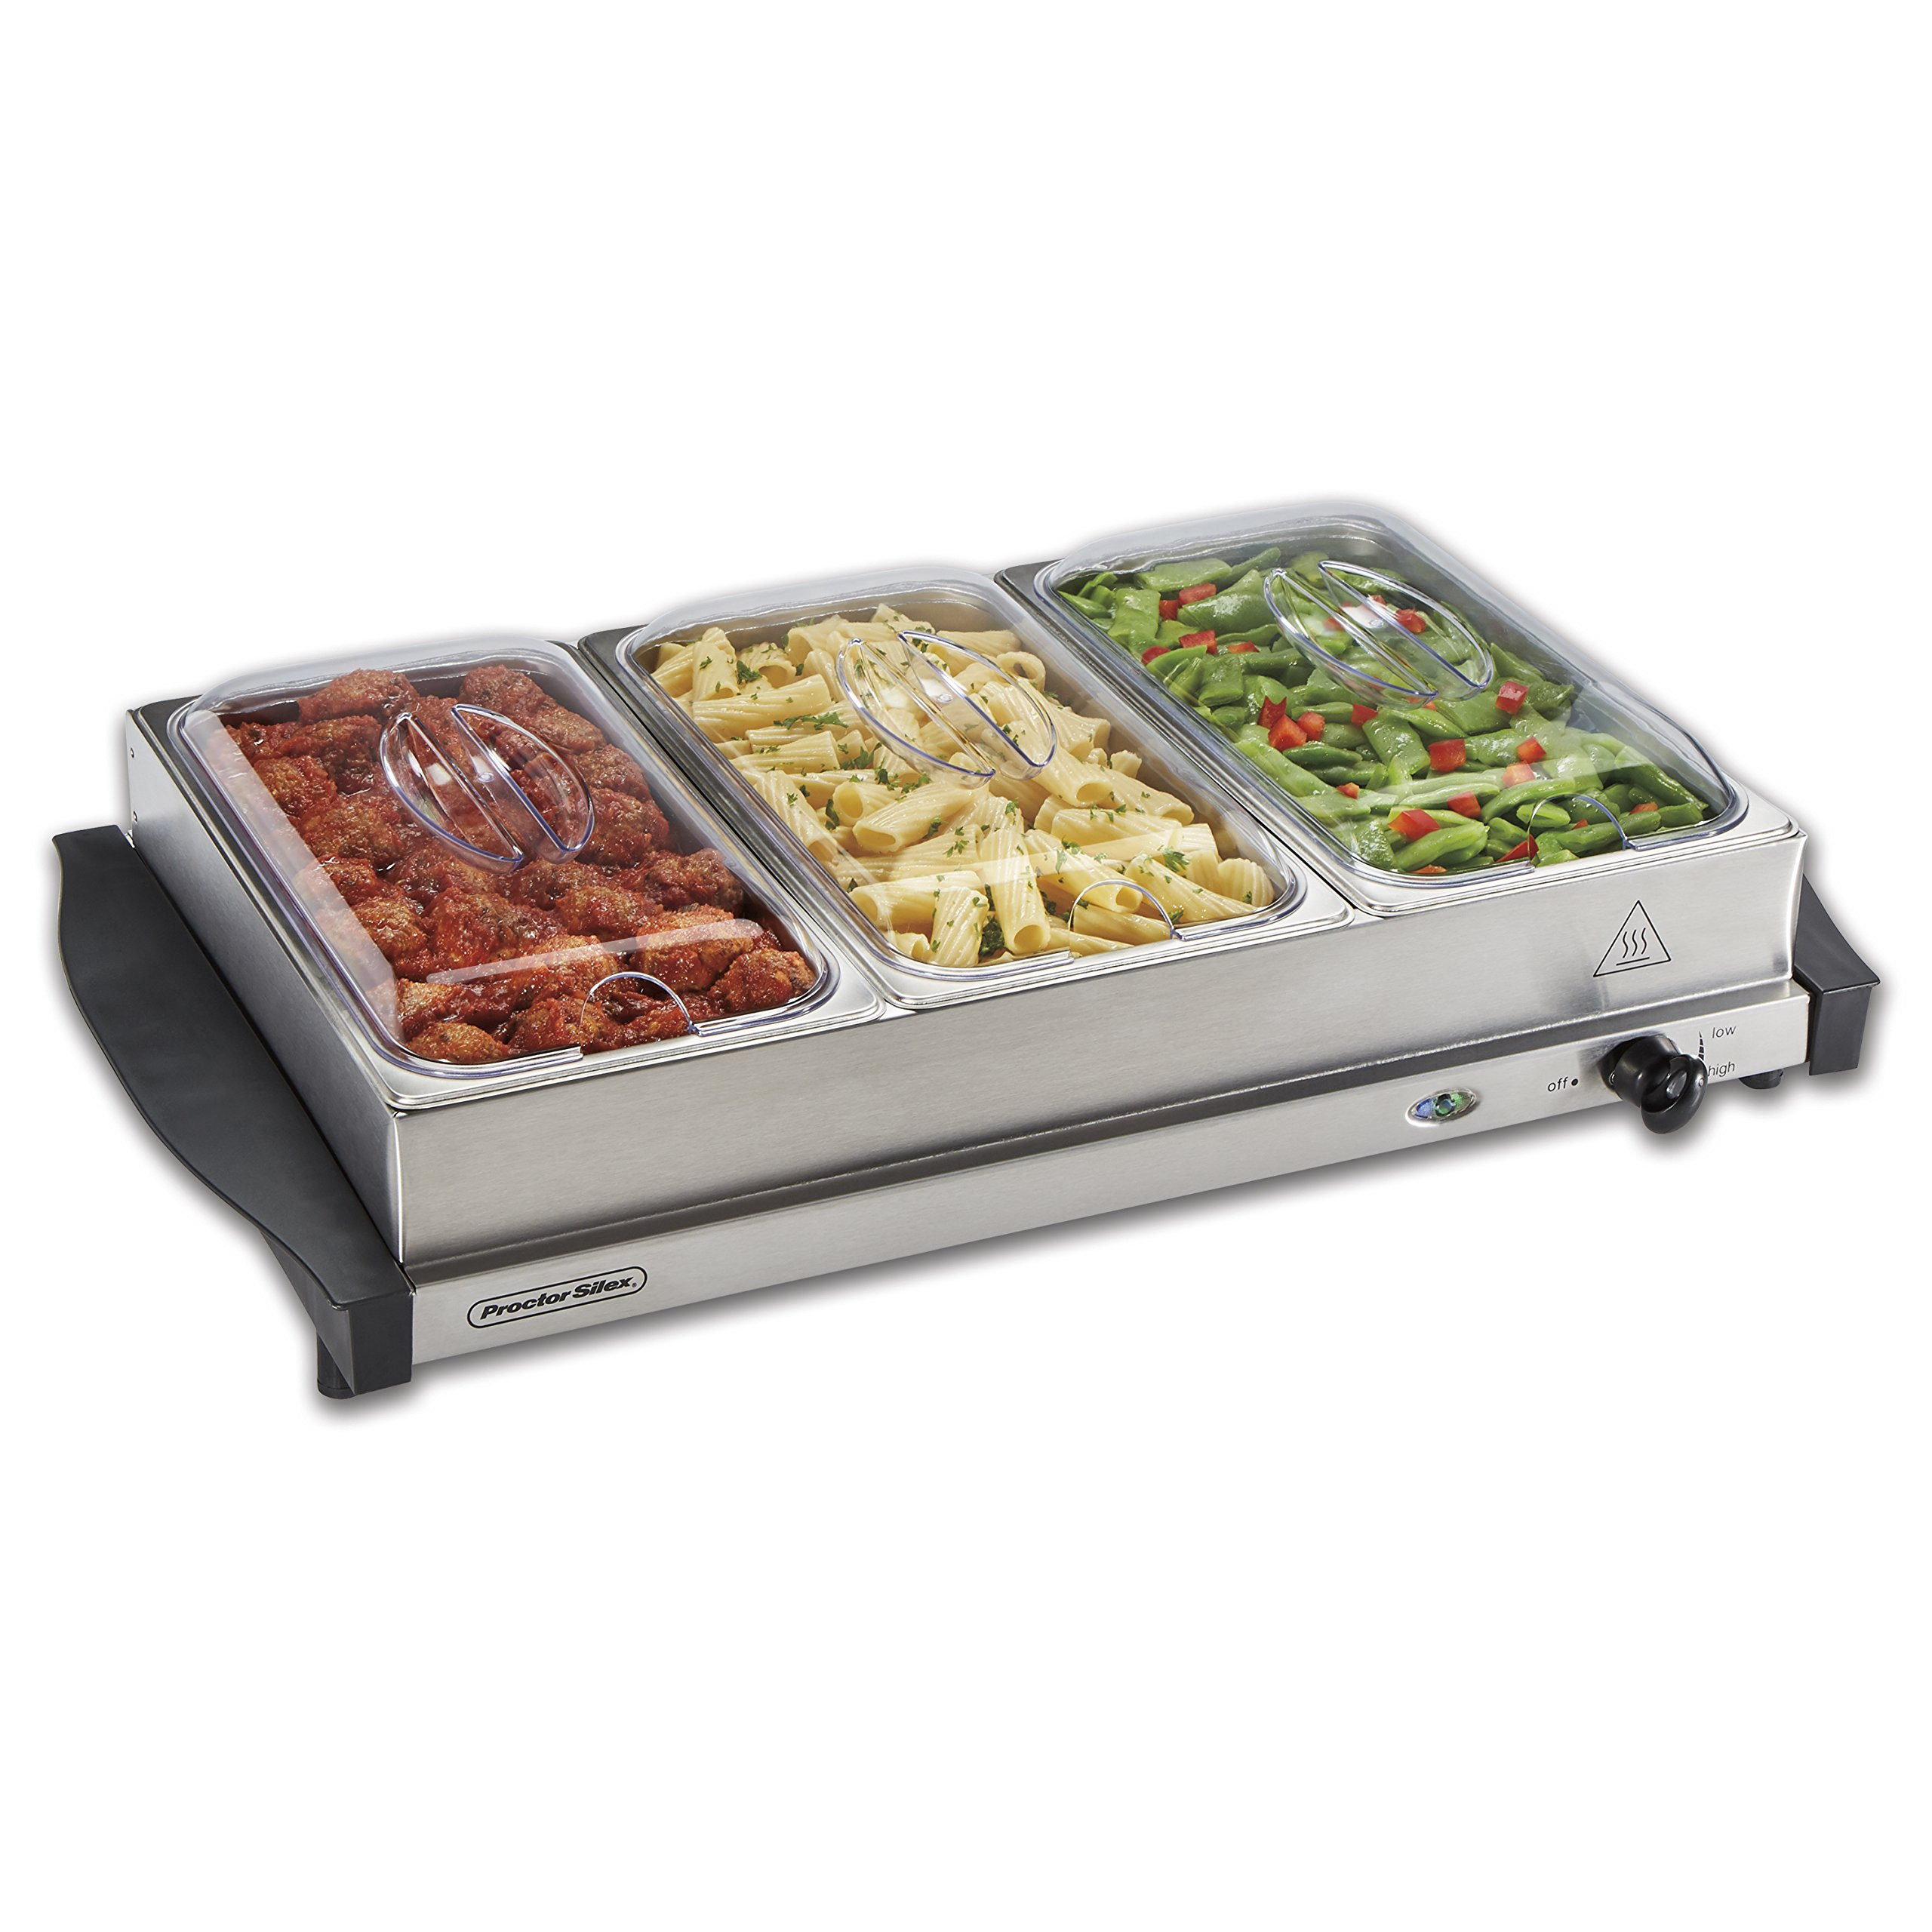 Proctor Silex 34300 Buffet Server & Food Warming Tray, Three 2.2 Quart Stainless Steel Chafing Dishes, Adjustable Heat by Proctor Silex